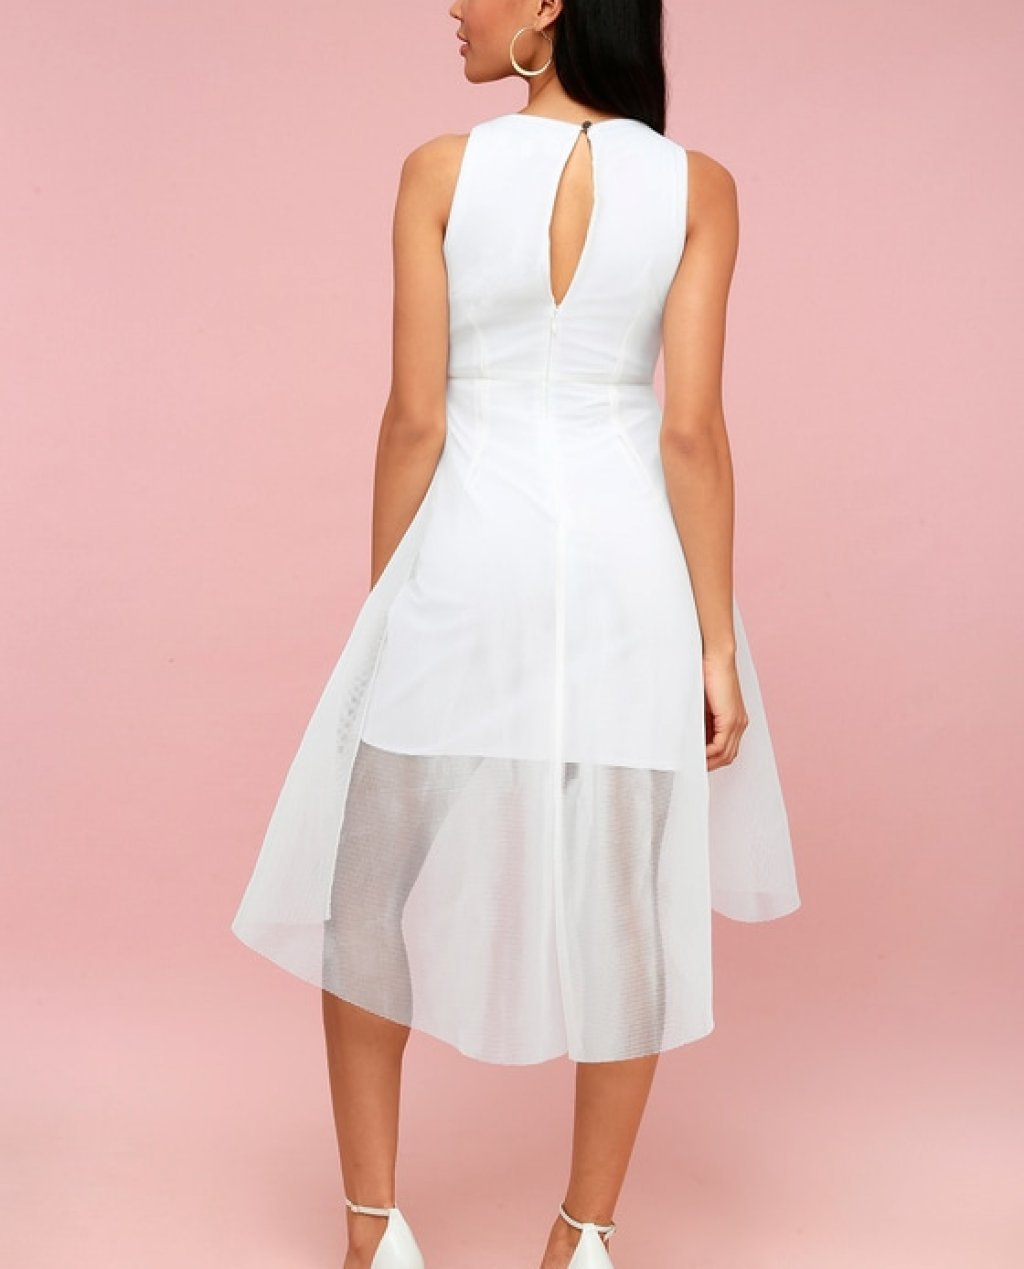 9caadeab8 White Mesh Dress - High low Elliatt Jewel Dress